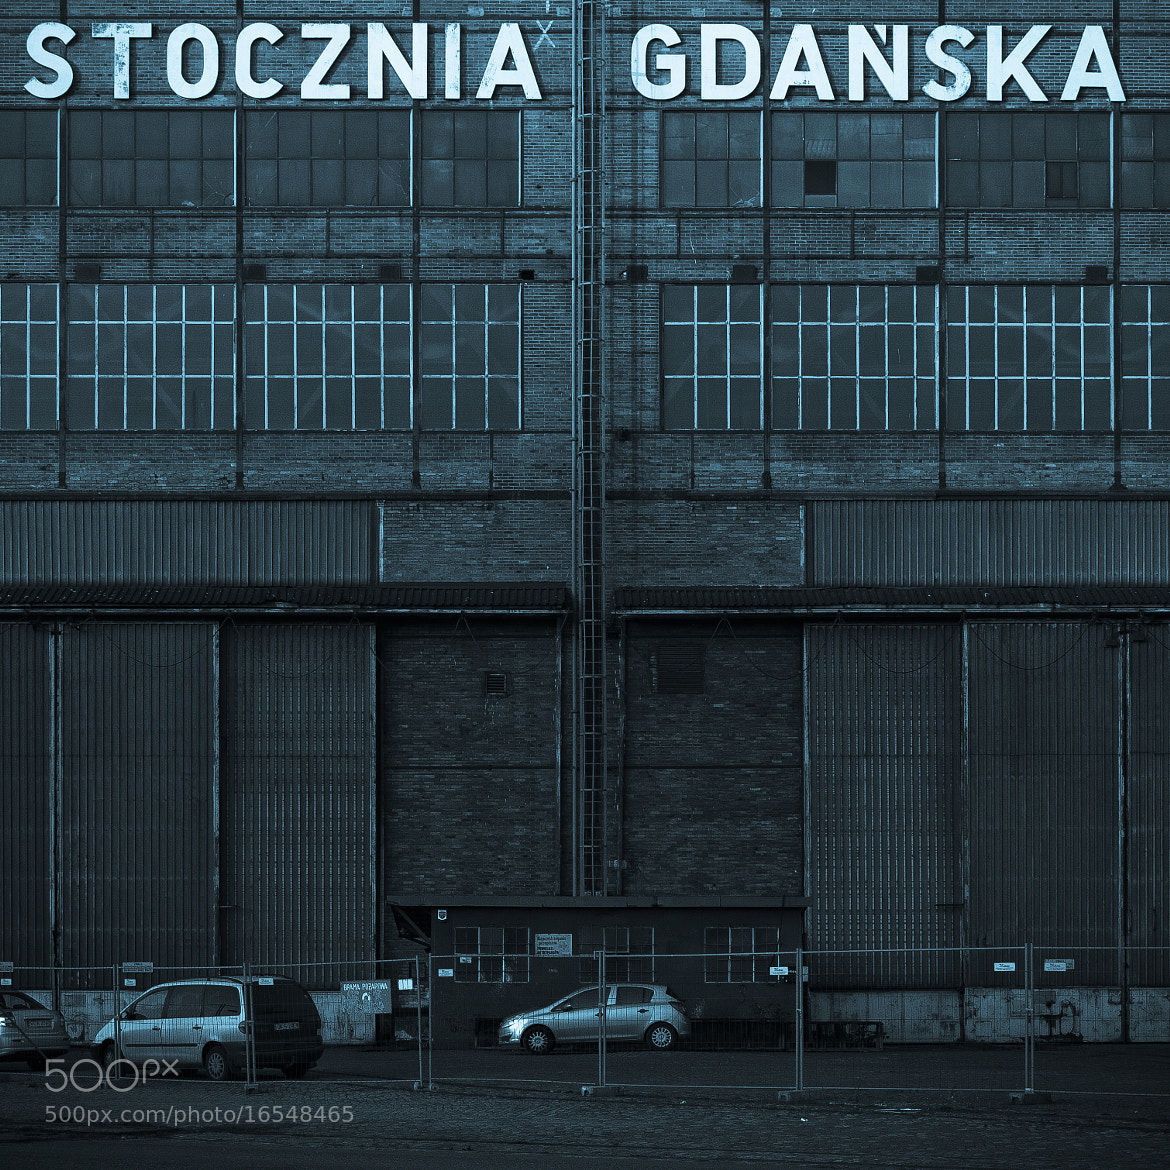 Photograph Gdansk Shipyard by Adam Sandurski on 500px